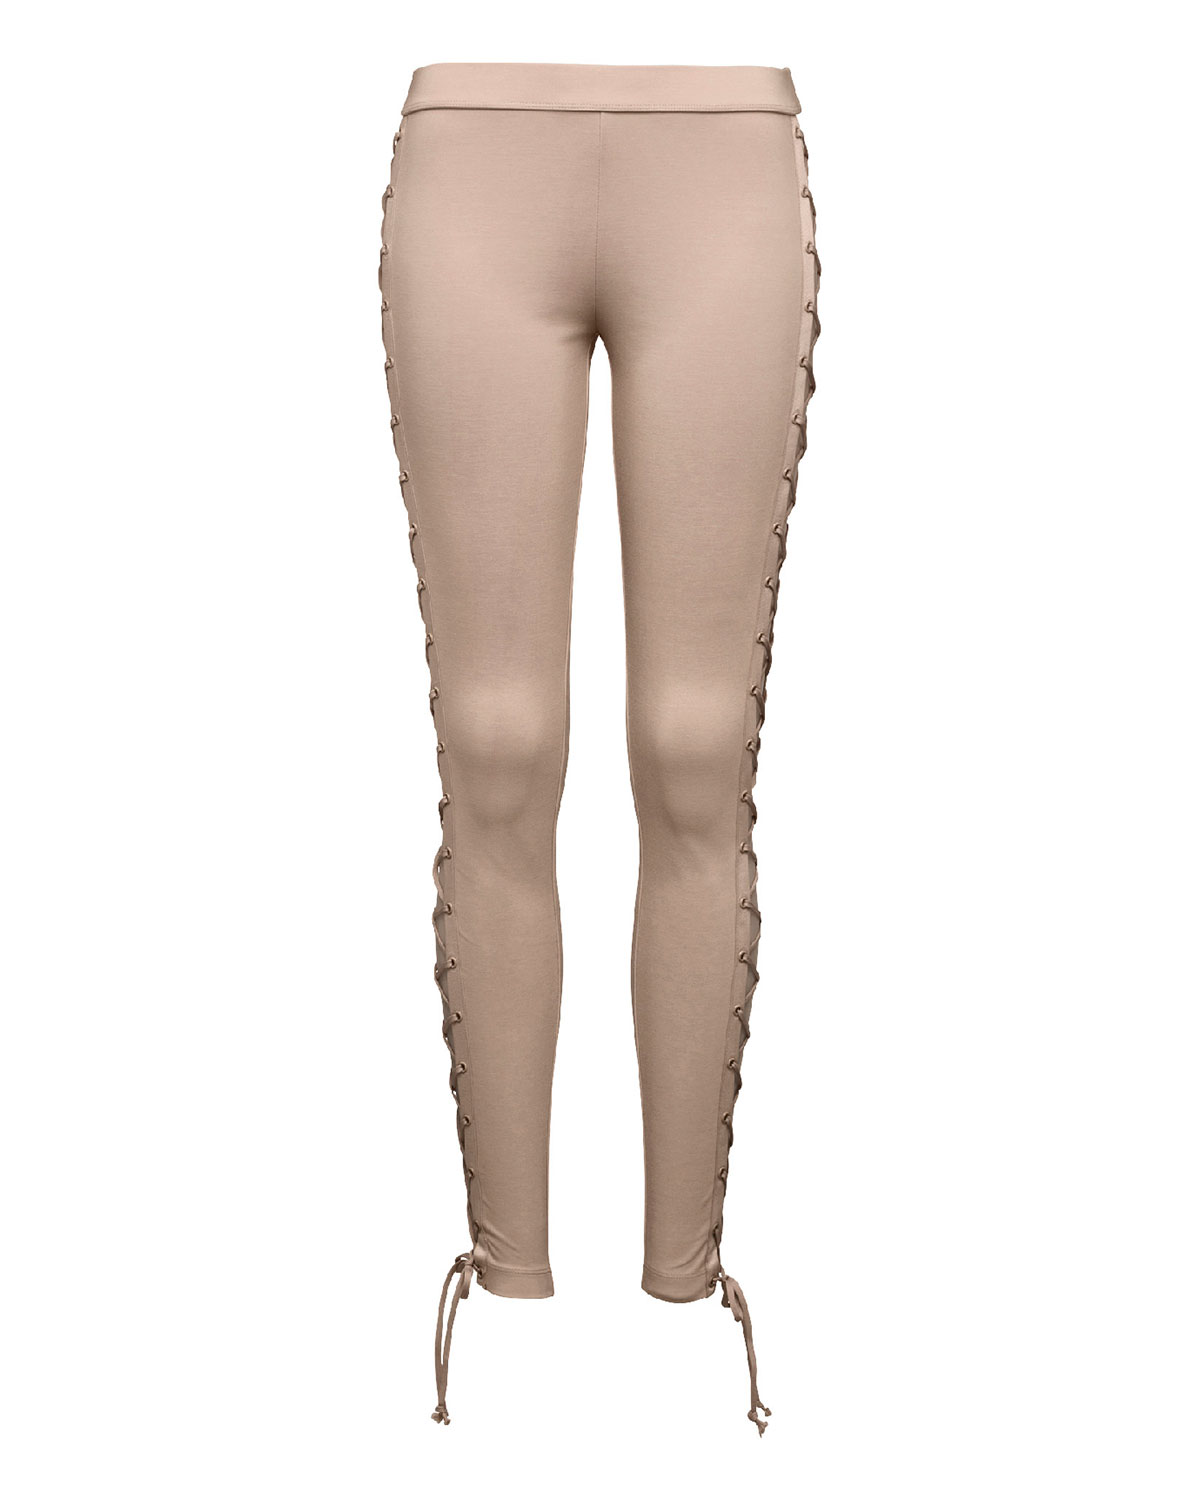 82f93a21122d Fenty Puma by Rihanna Lace-Up Stretch-Knit Leggings, Beige   Neiman ...